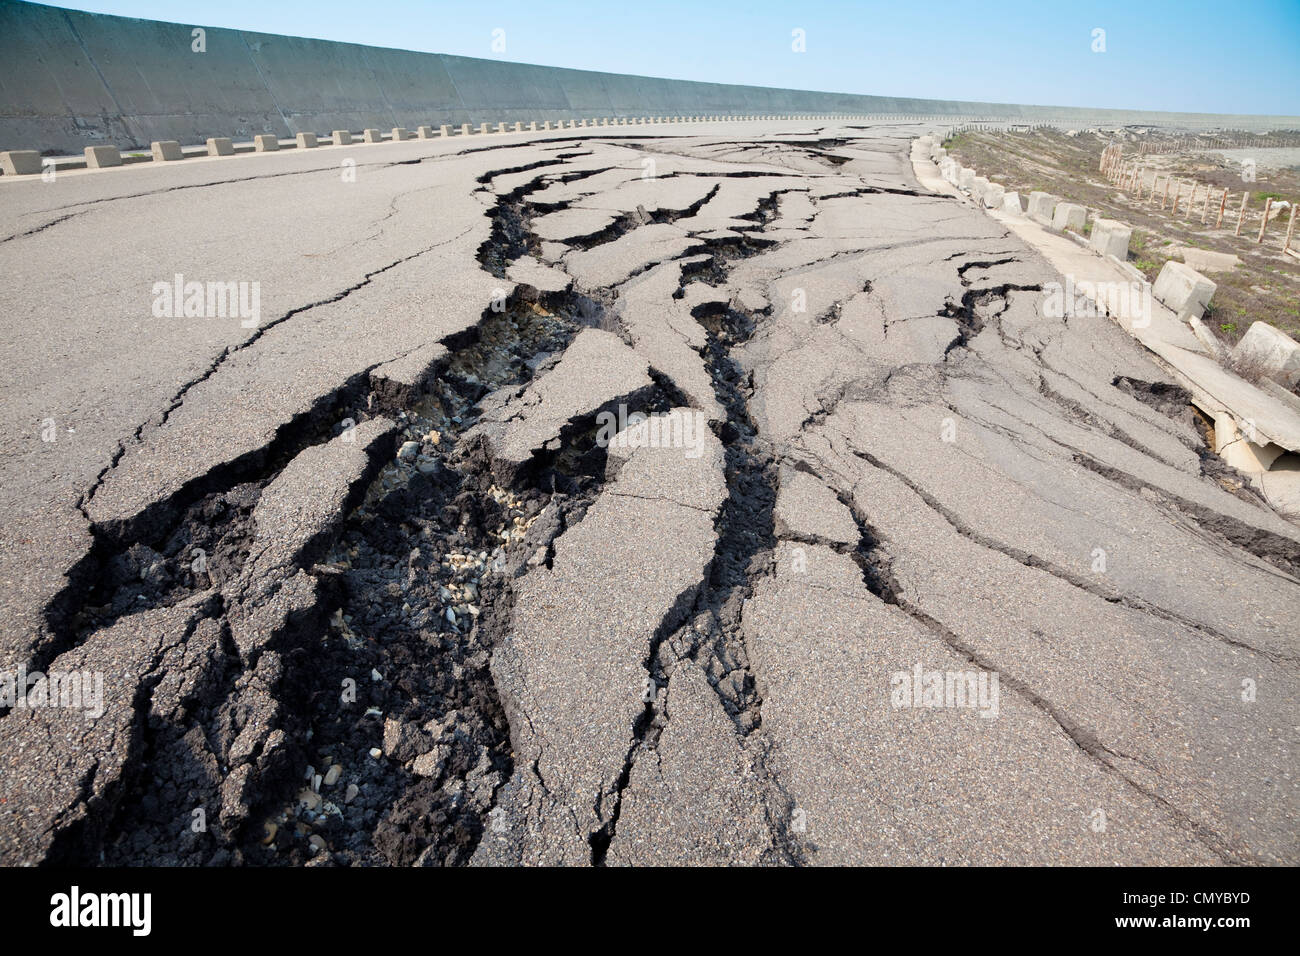 cracked road after earthquake - Stock Image